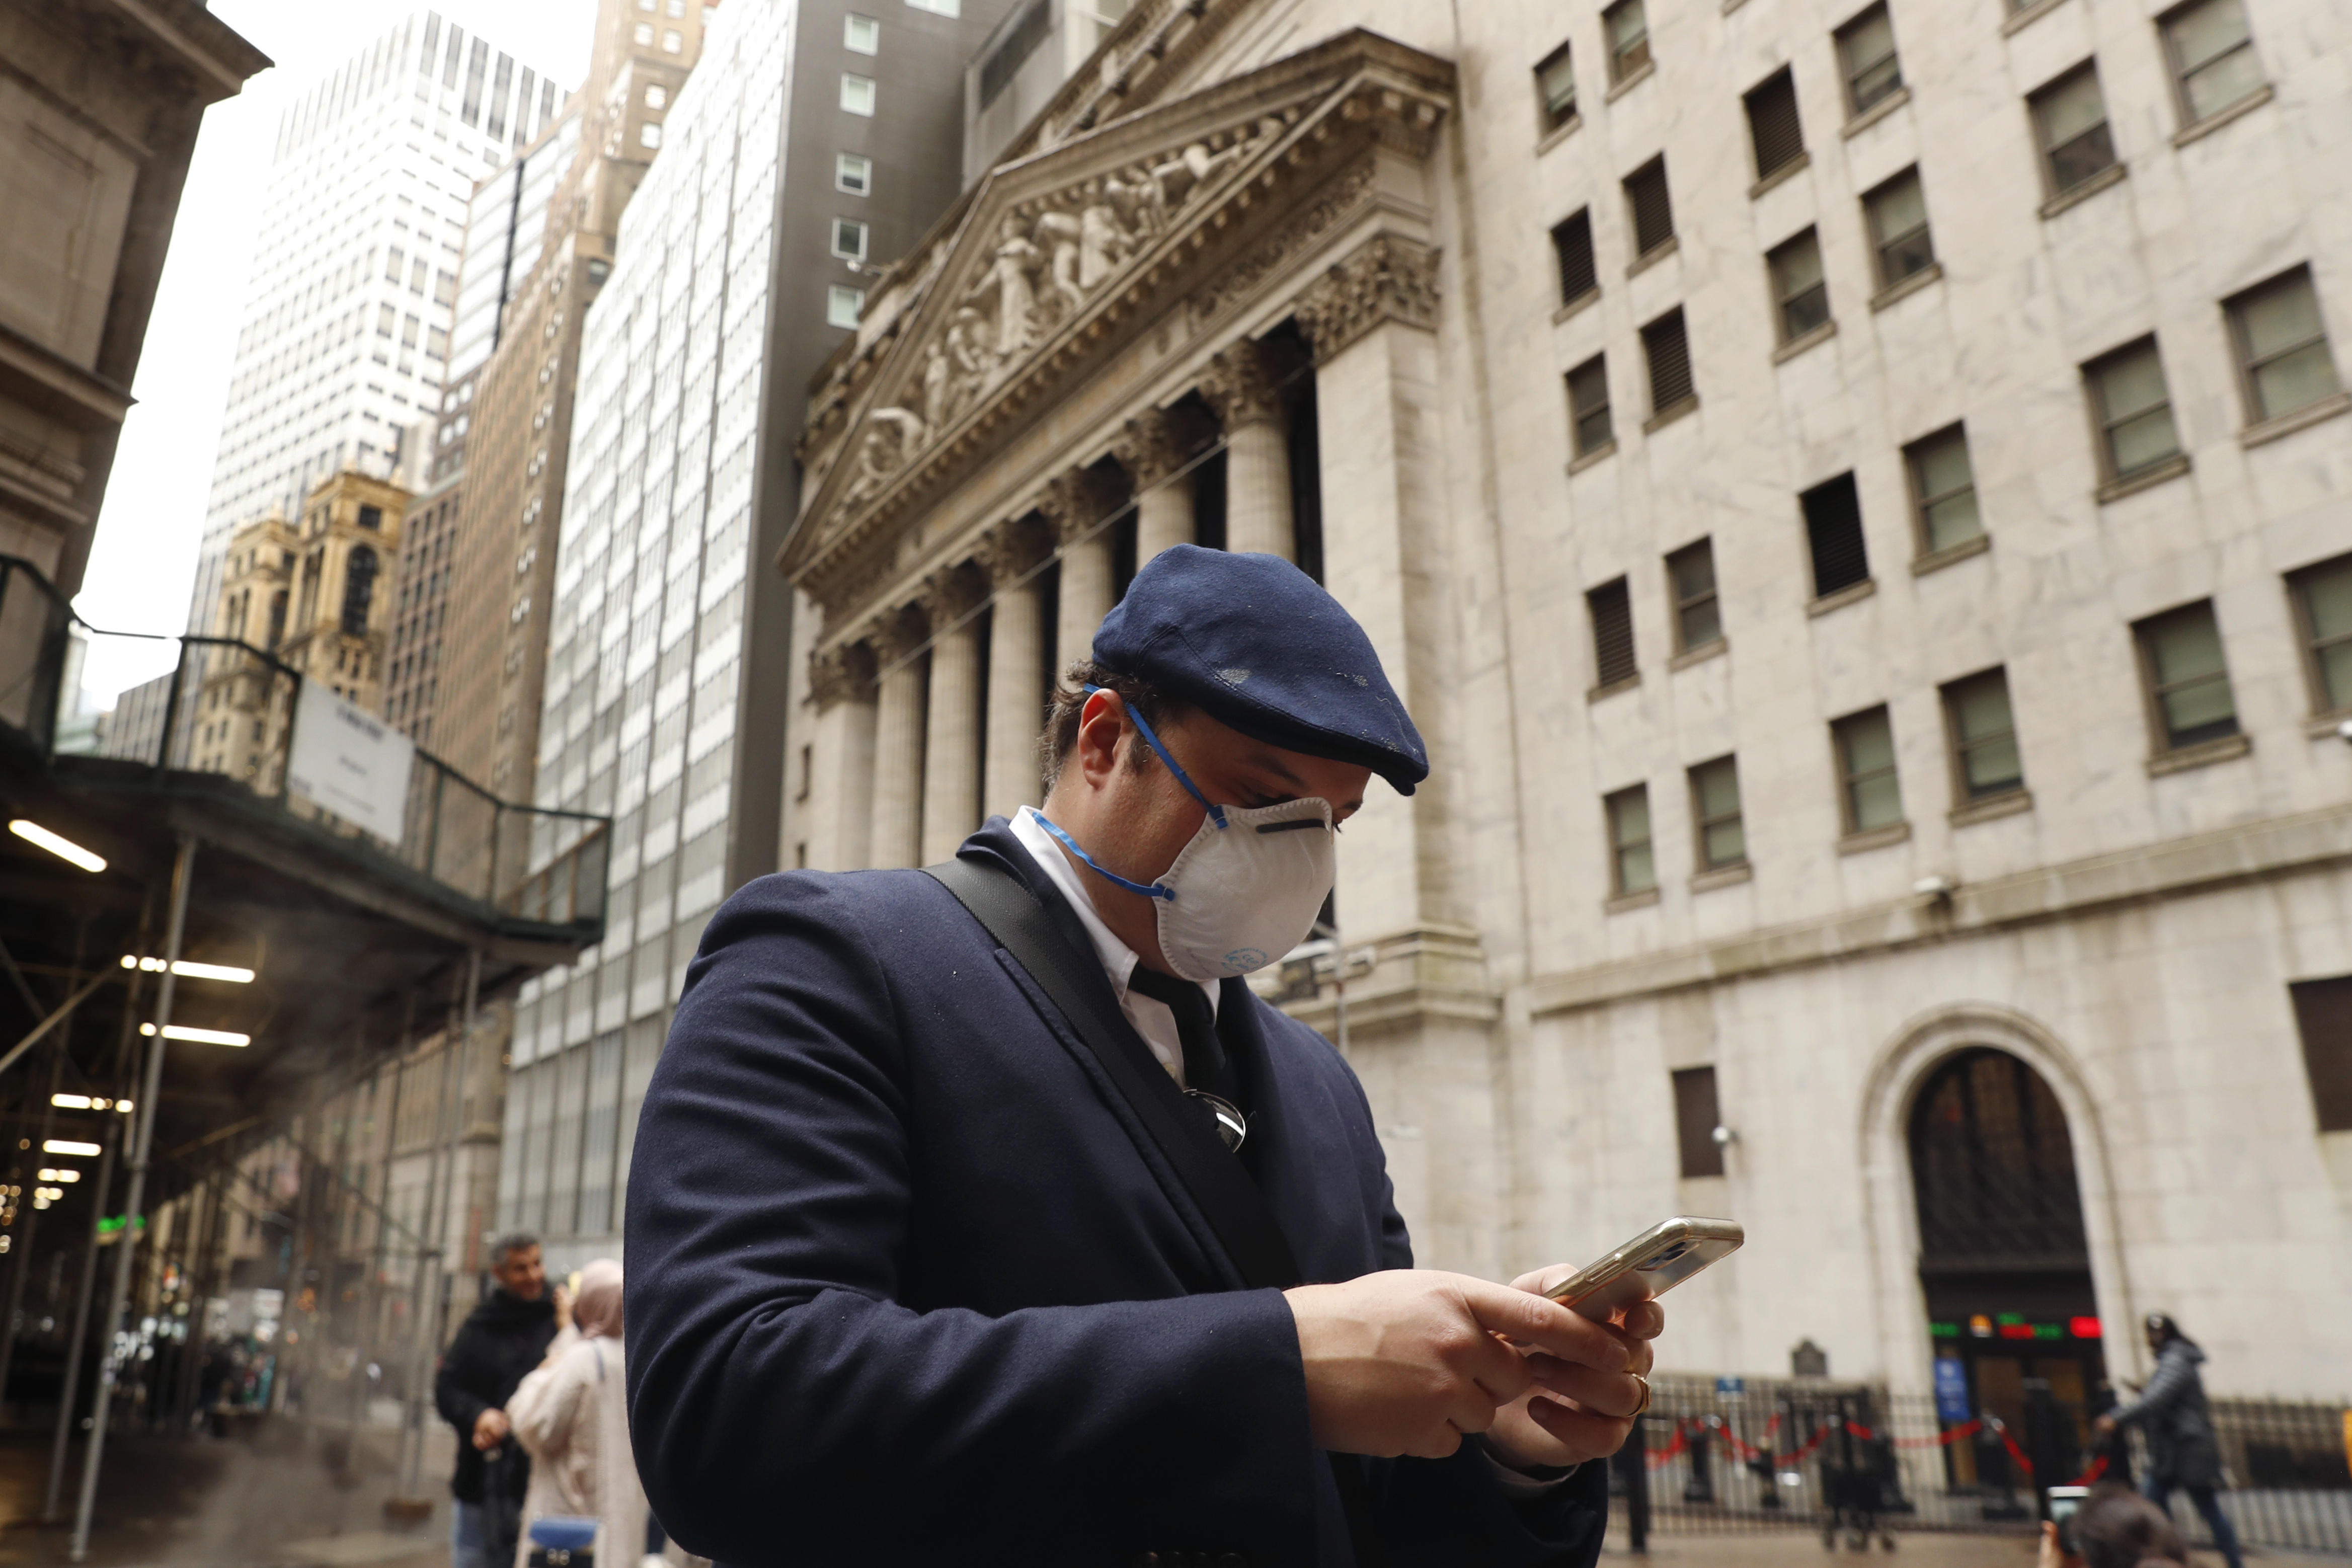 A man wears a protective mask as he walks past the New York Stock Exchange on the corner of Wall and Broad streets during the coronavirus outbreak in New York City, New York, U.S., March 13, 2020. REUTERS/Lucas Jackson